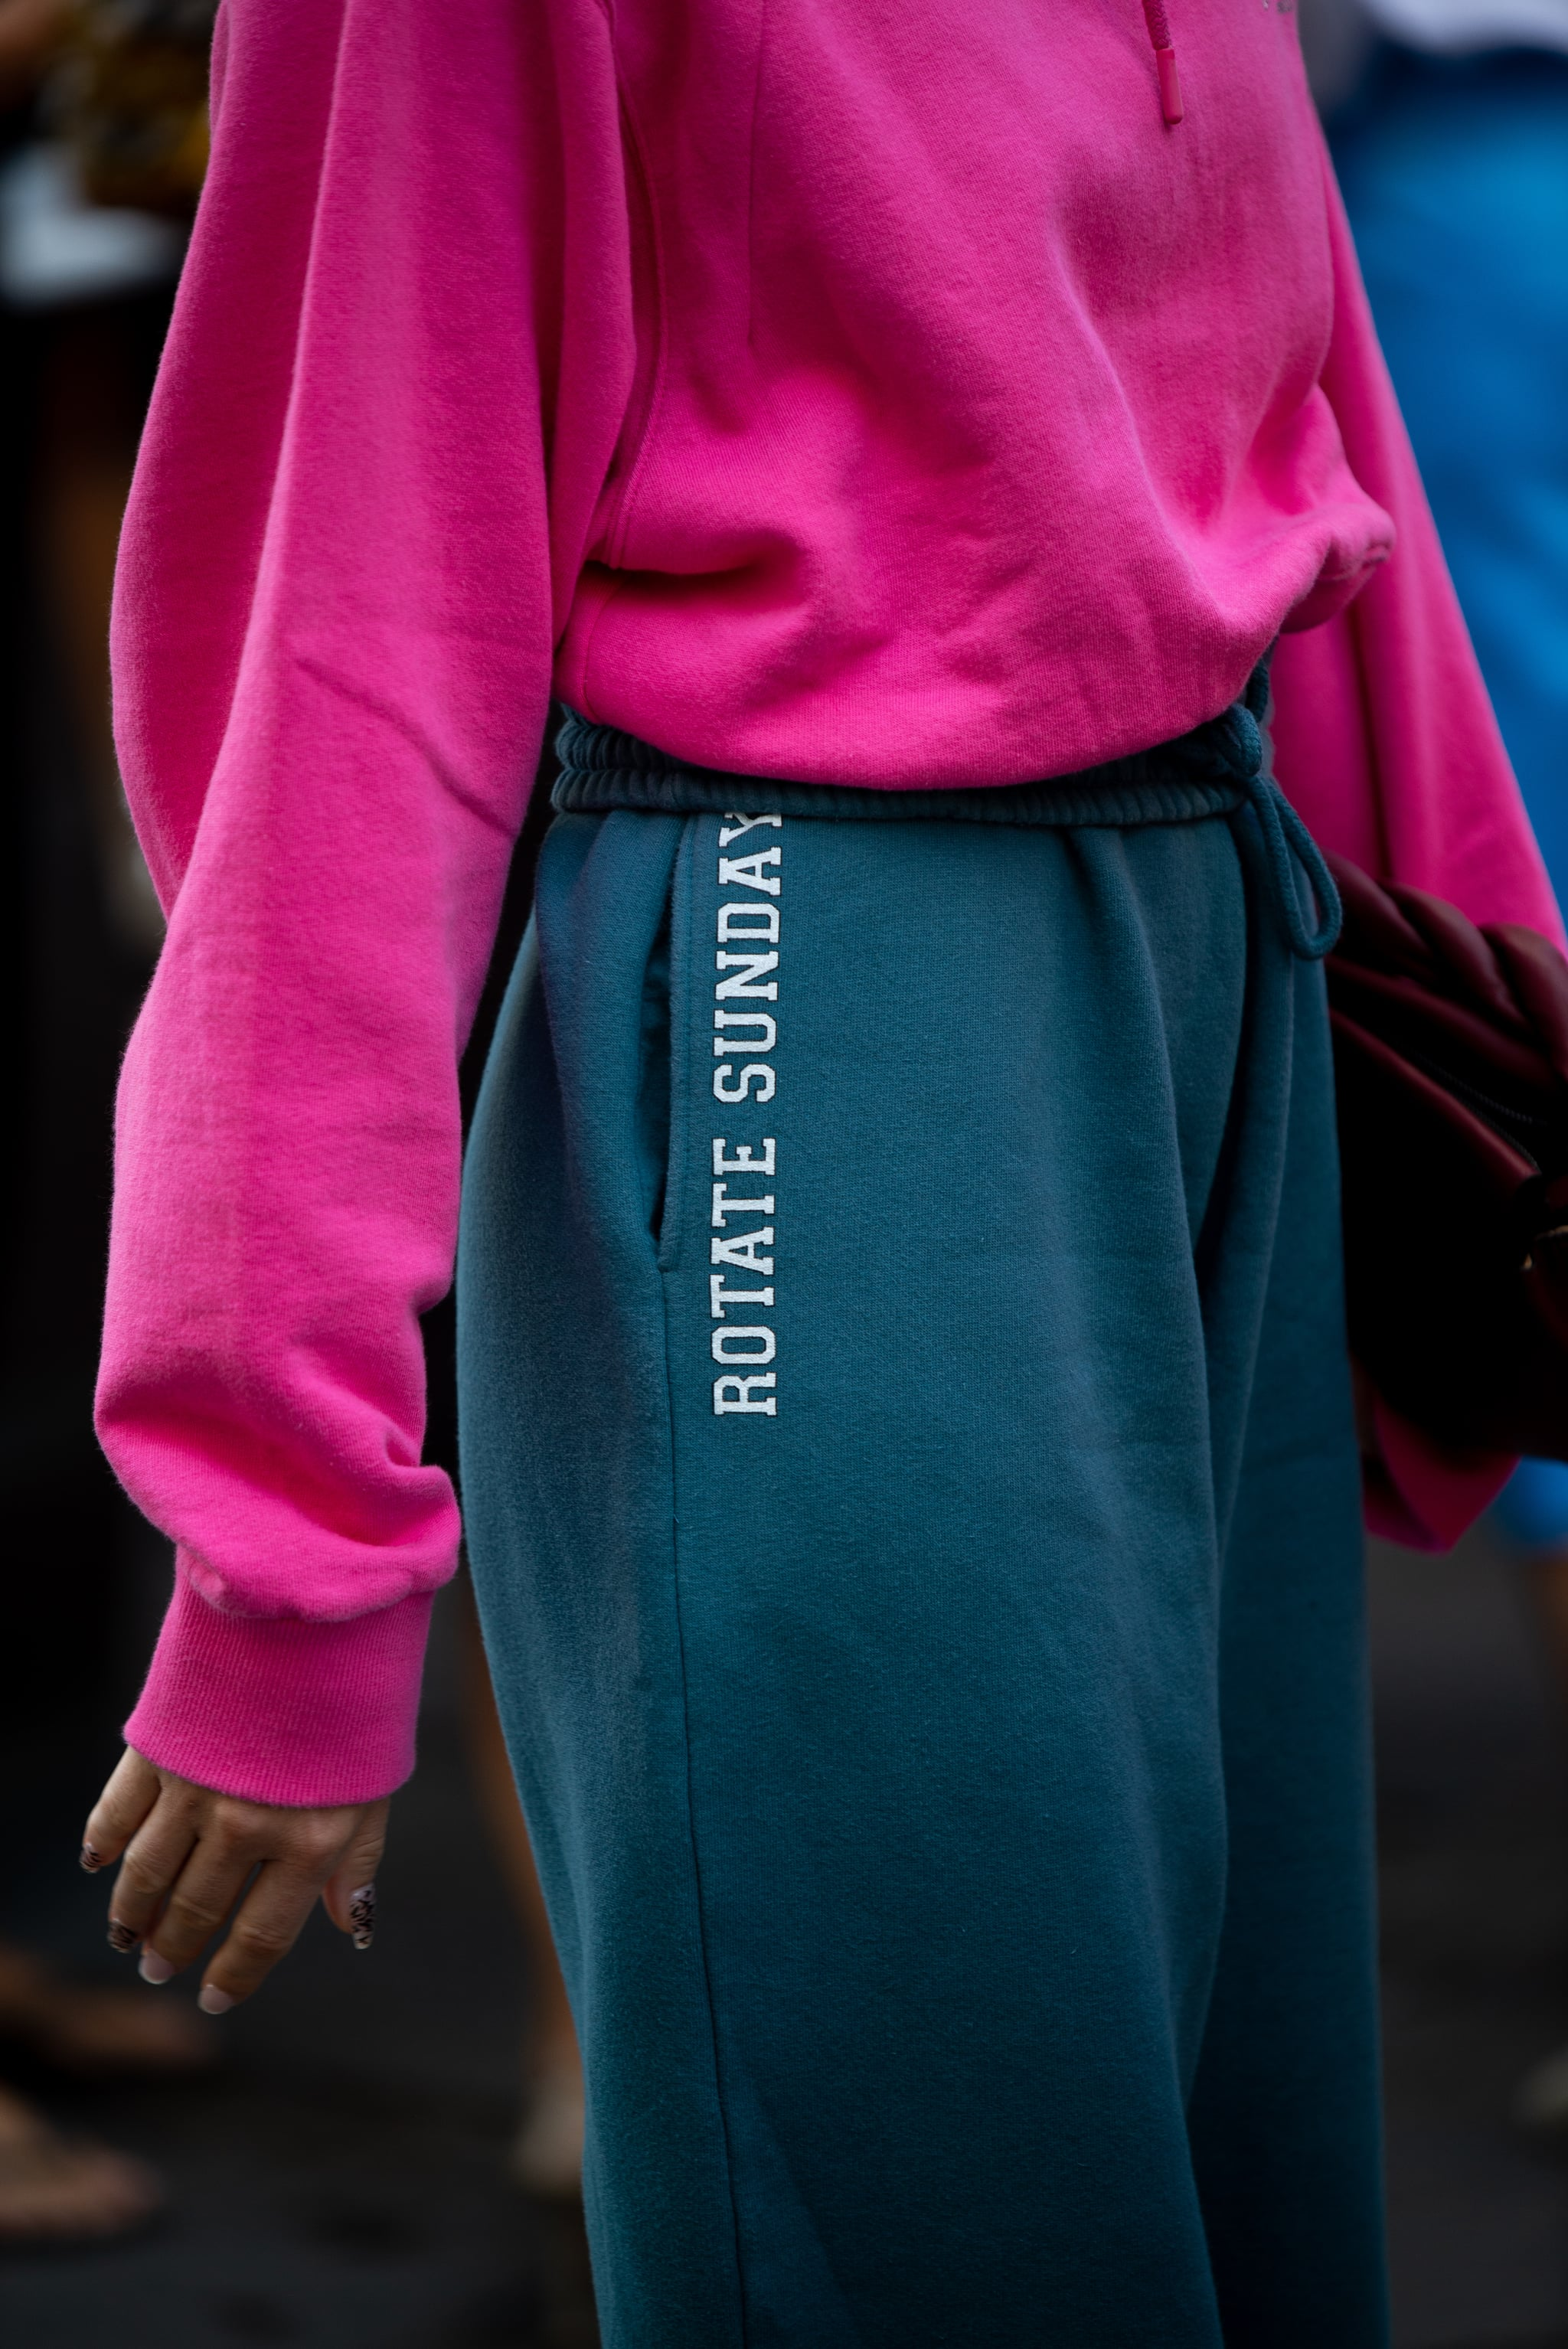 COPENHAGEN, DENMARK - AUGUST 11: Thora Valdimars wearing blue sweatpants, high-heels and pink jamper outside Lovechild 1979 wearing during Copenhagen fashion week SS21 on August 11, 2020 in Copenhagen, Denmark. (Photo by Raimonda Kulikauskiene/Getty Images)